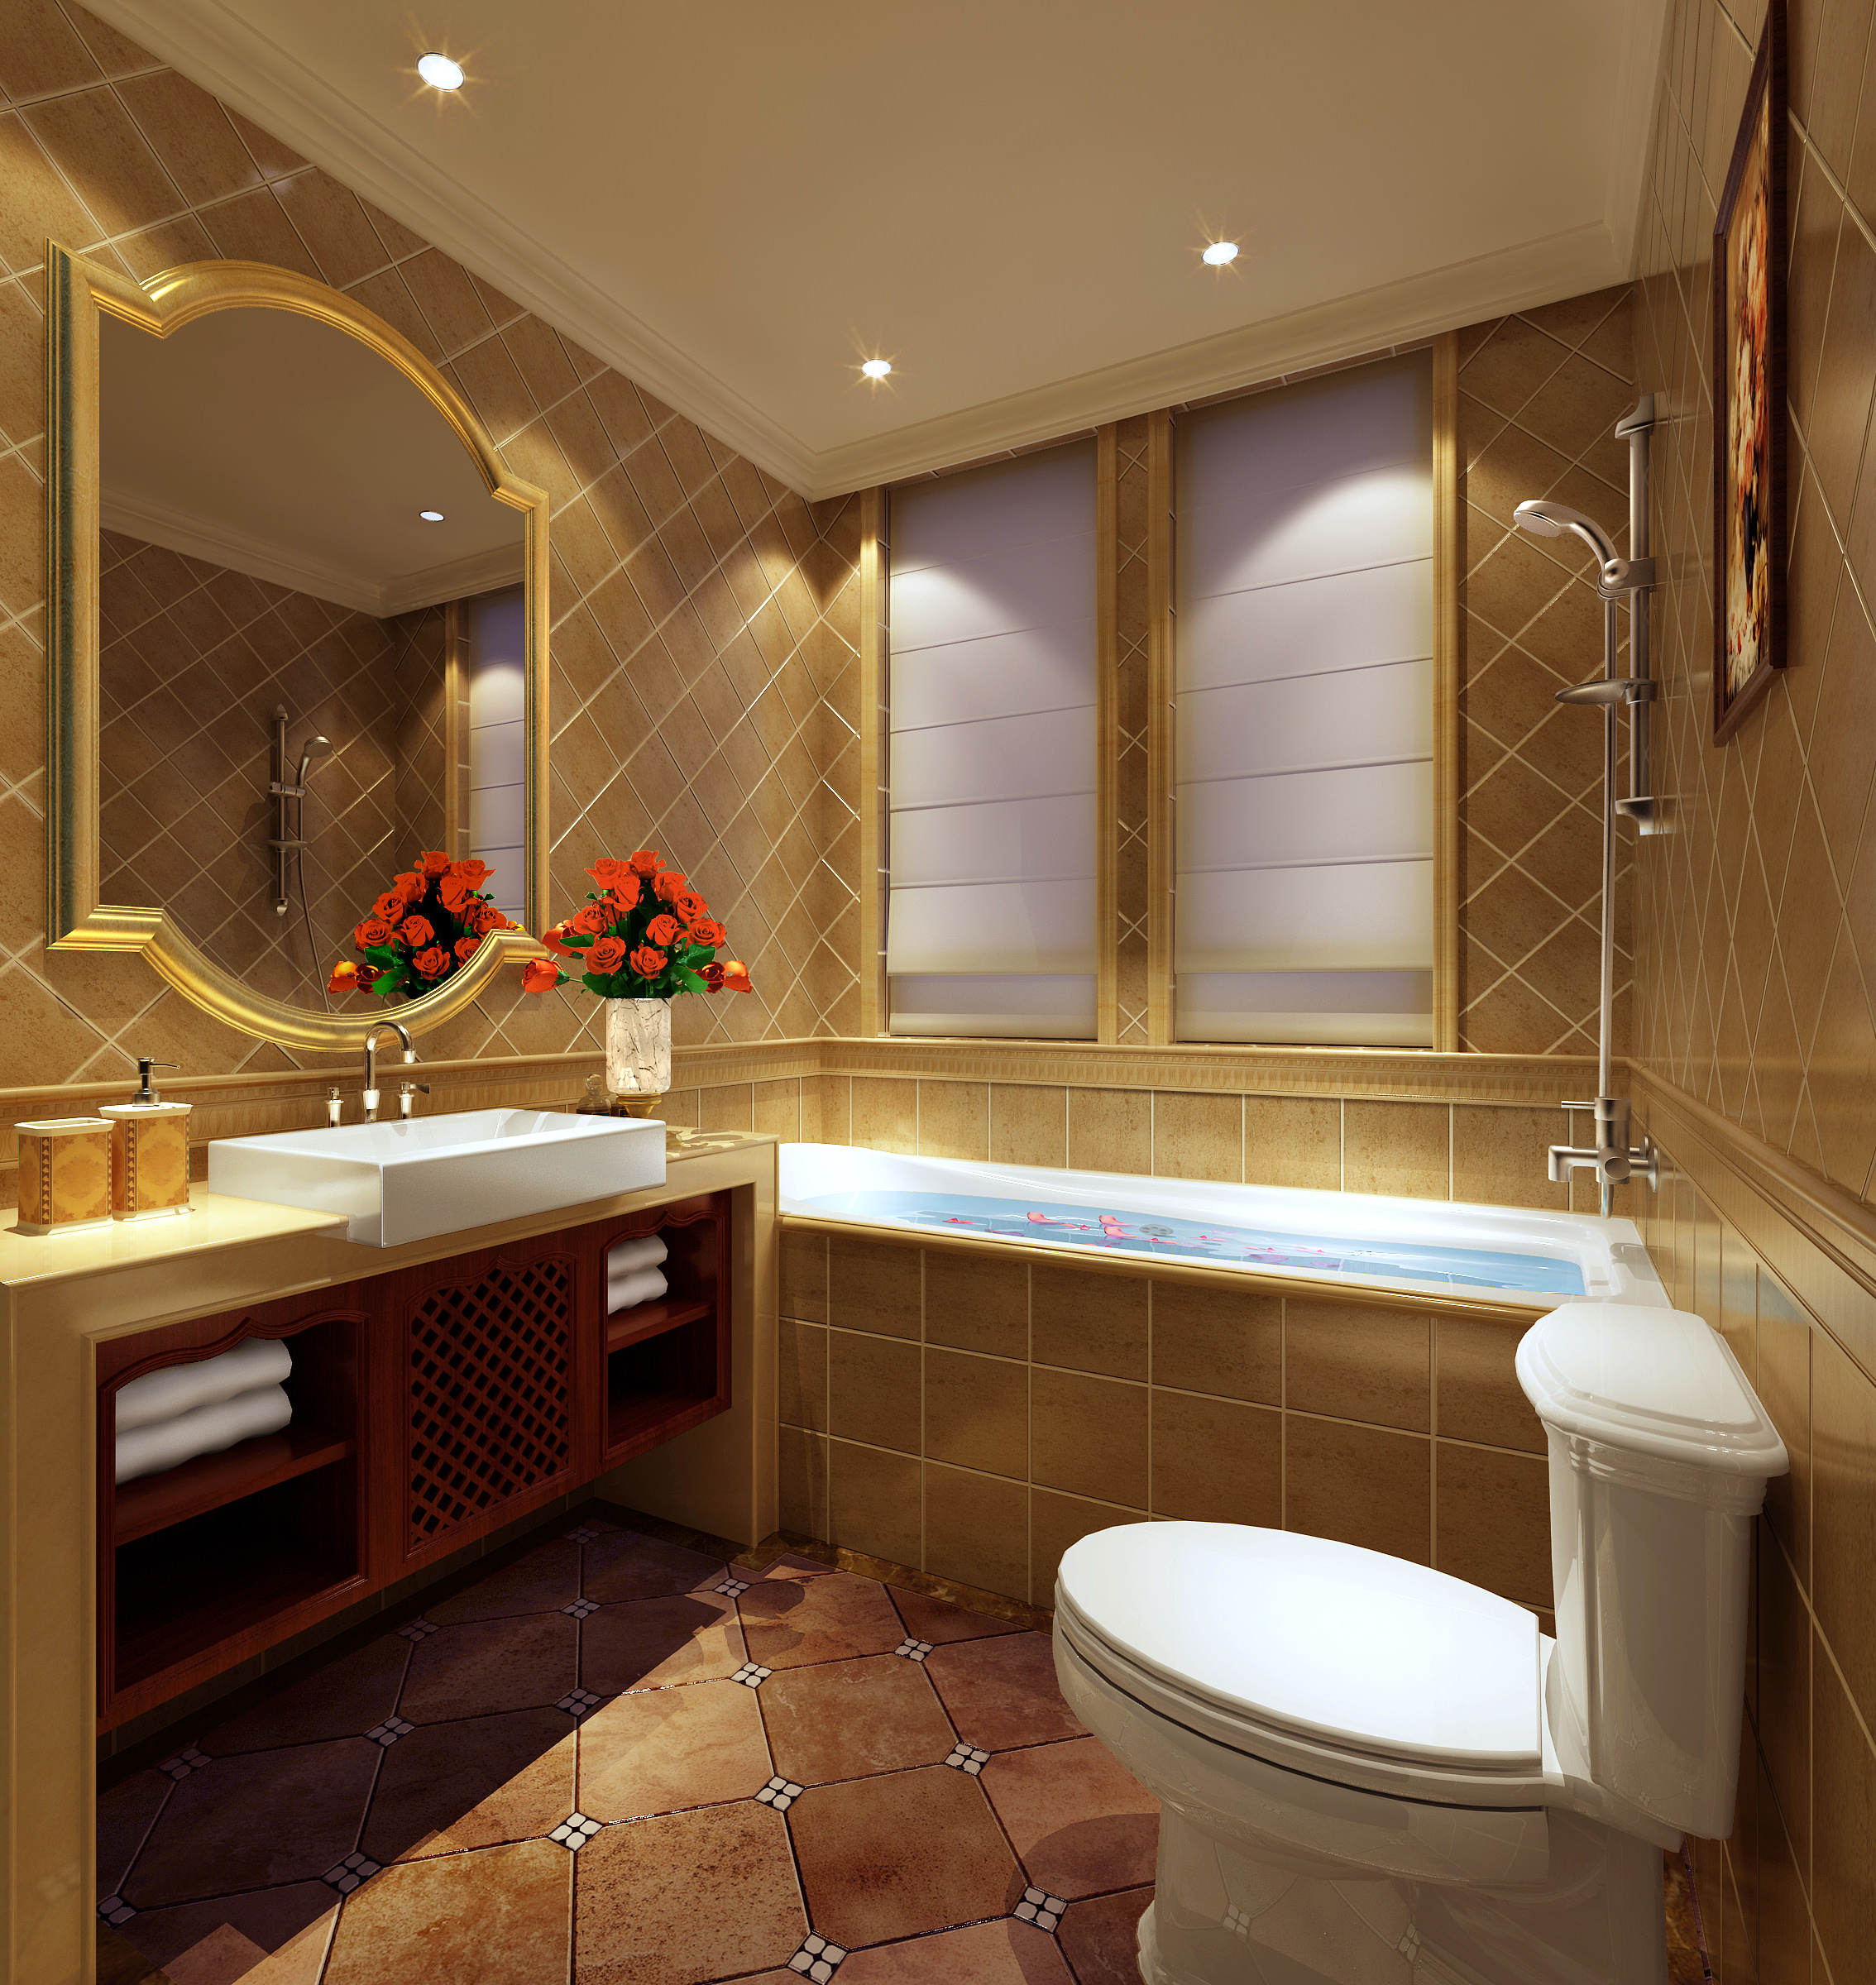 Luxury bathroom 3d model max for Bathroom models photos